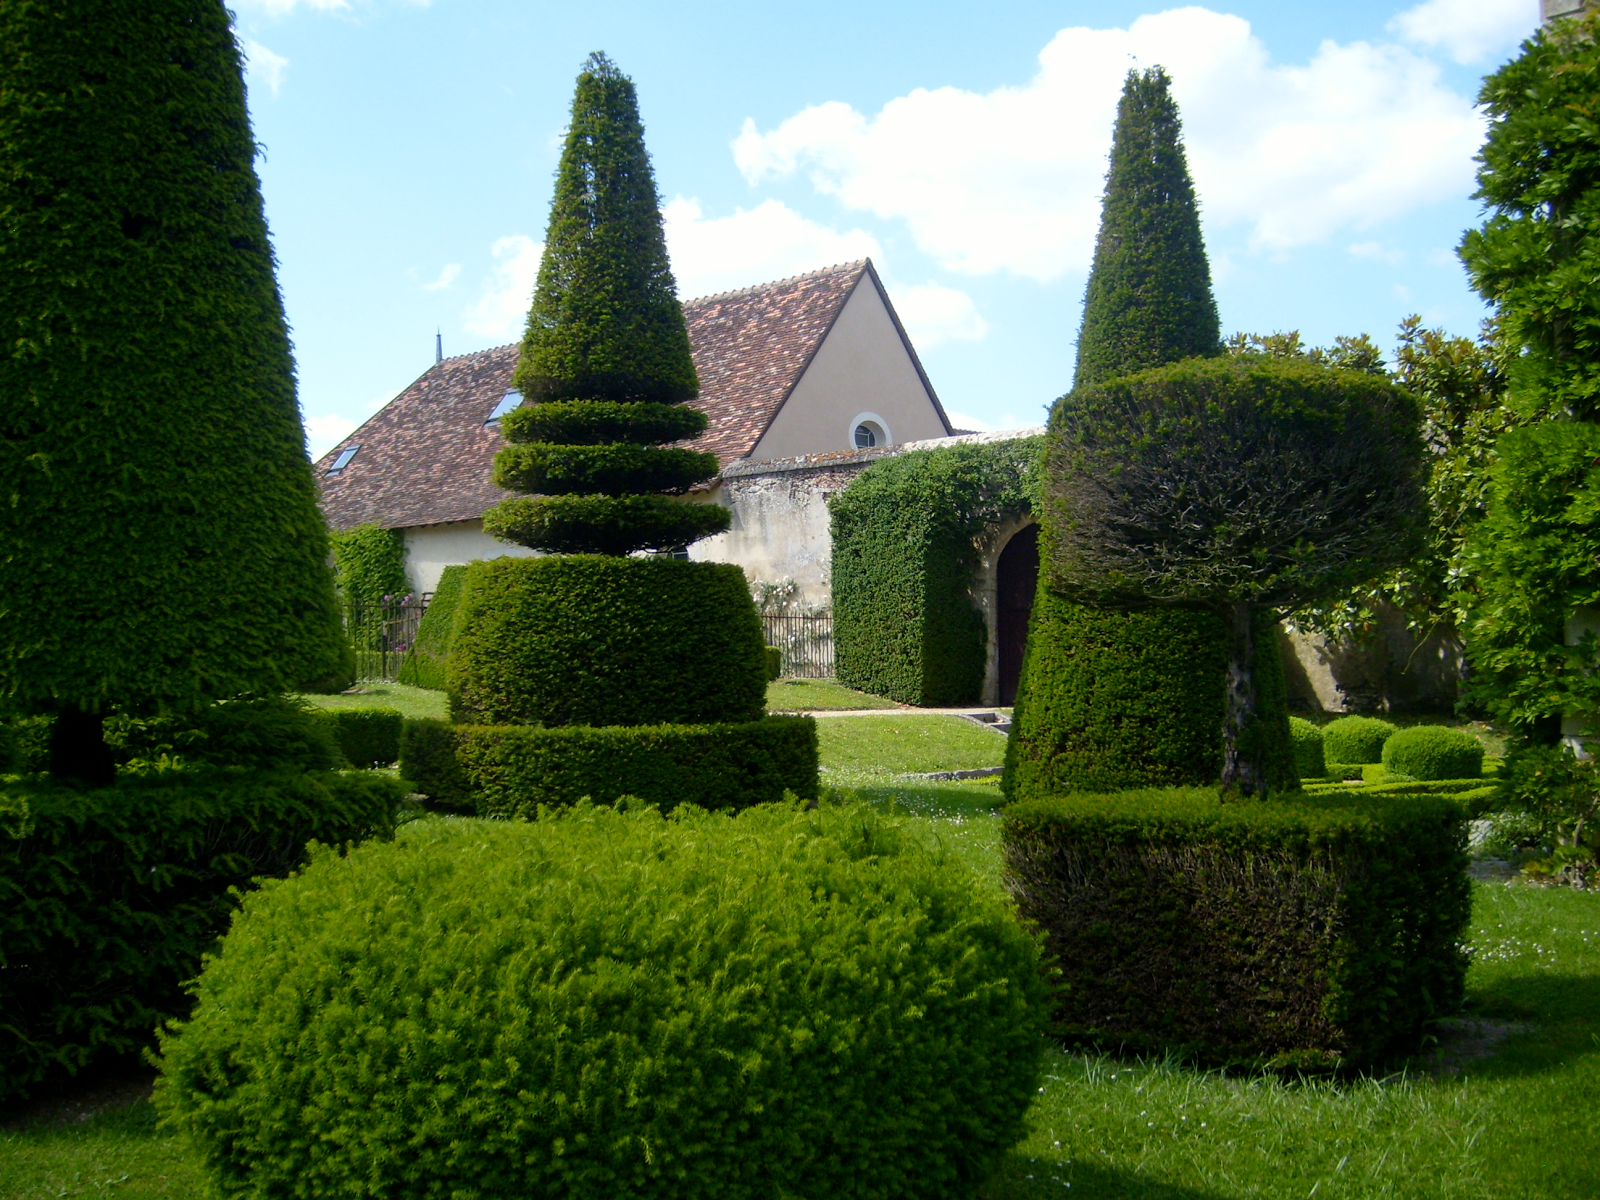 Garden with trimmed bushes perfectly